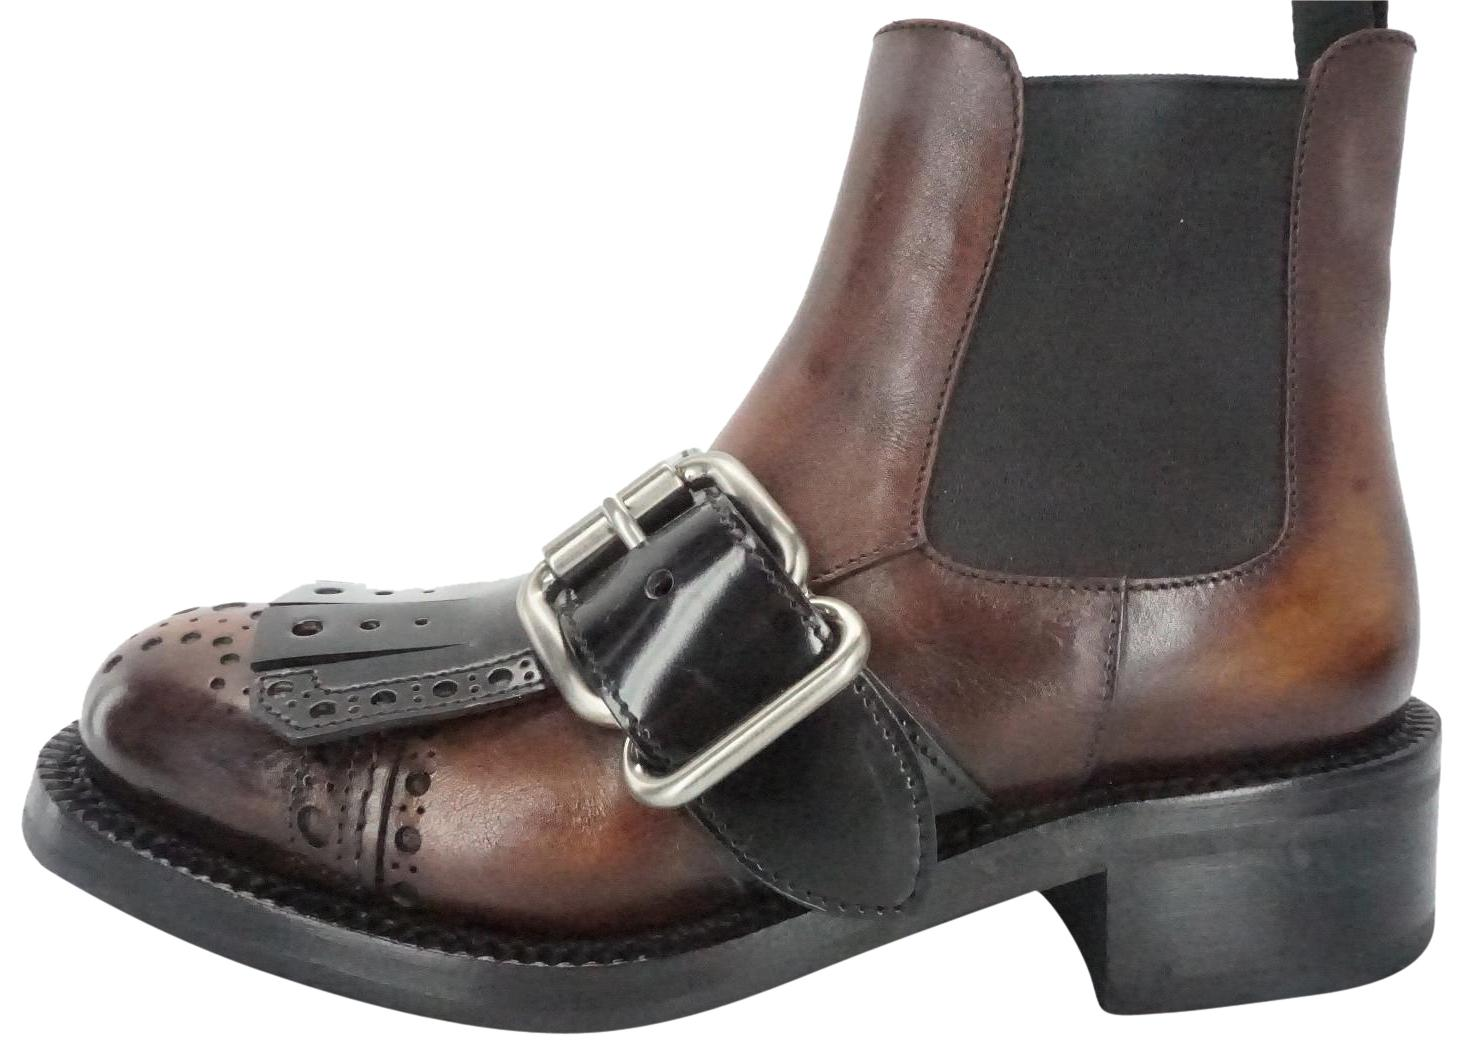 Prada Brown Leather Buckle Kiltie Chelsea Ankle Boots/Booties Size EU 35 (Approx. US 5) Regular (M, B)